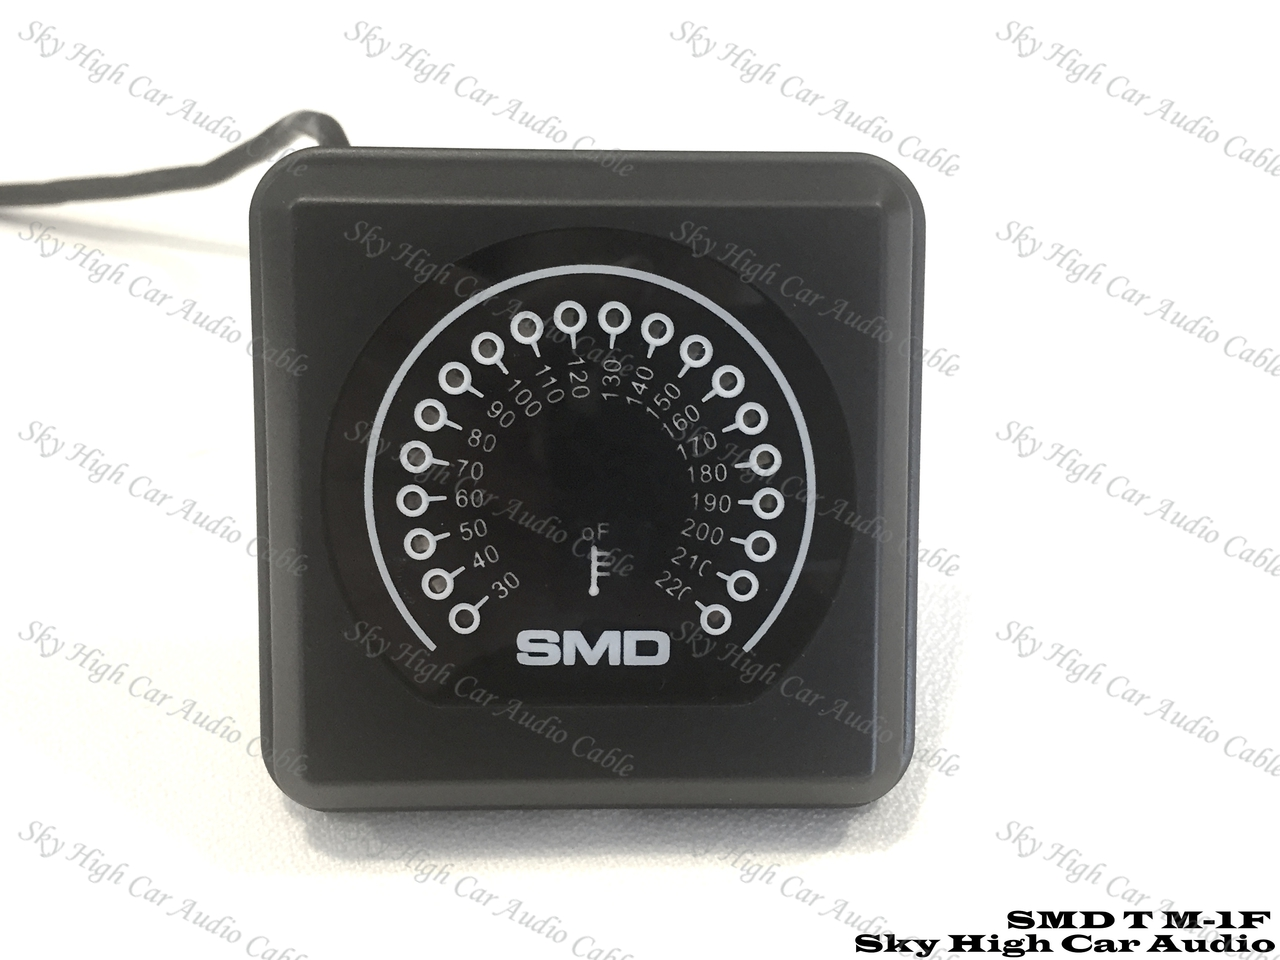 SMD TM-1 LED Amplifier Temperature Meter Fan Controller